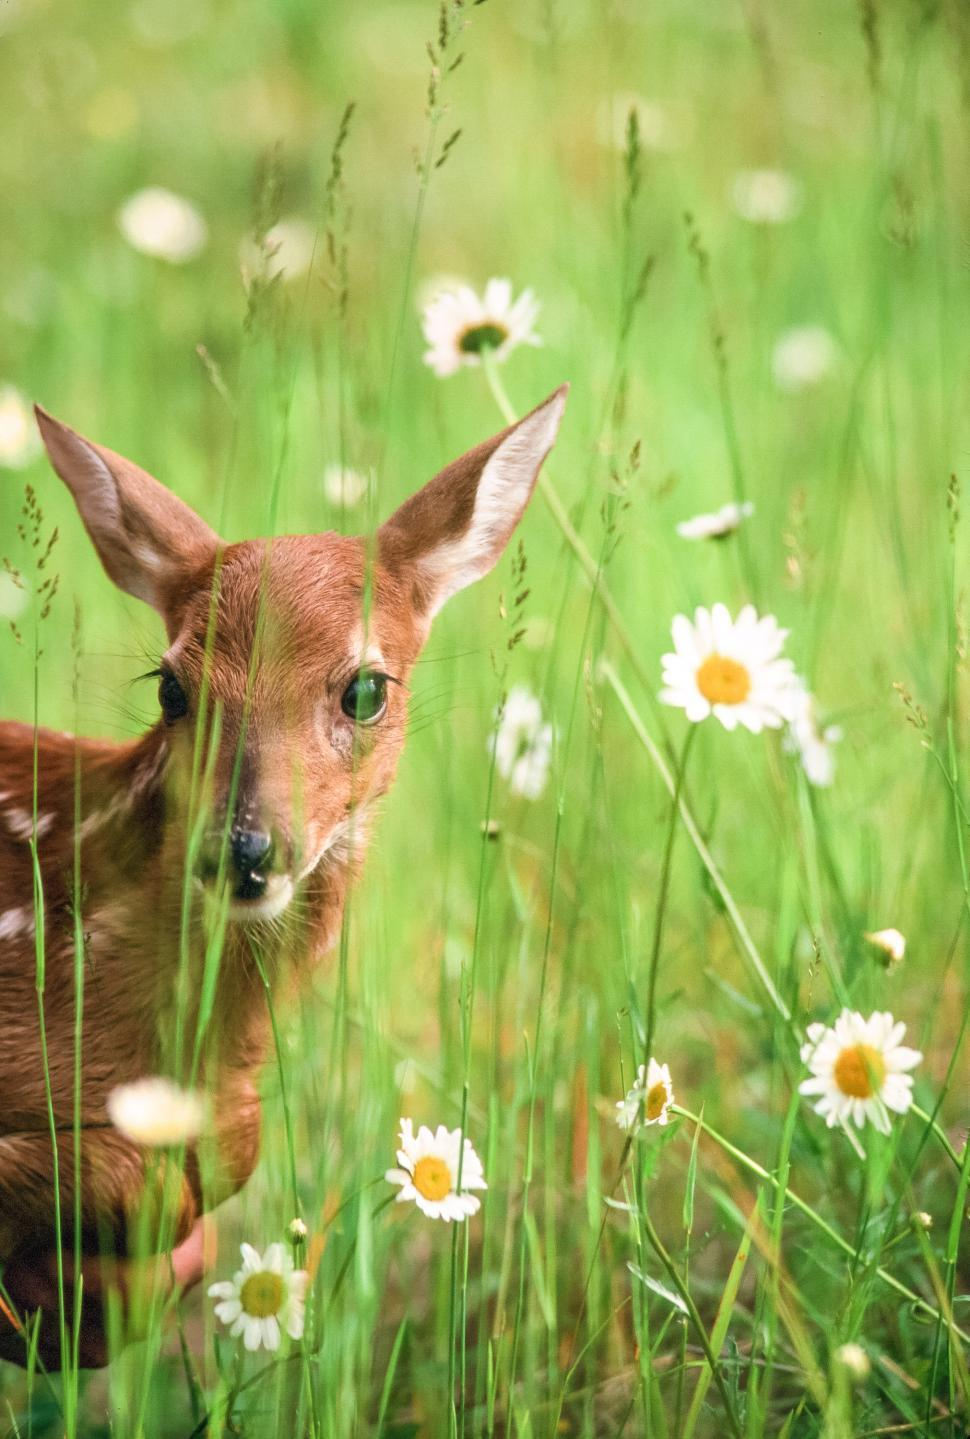 Download Free Stock HD Photo of Young Deer in grass Online